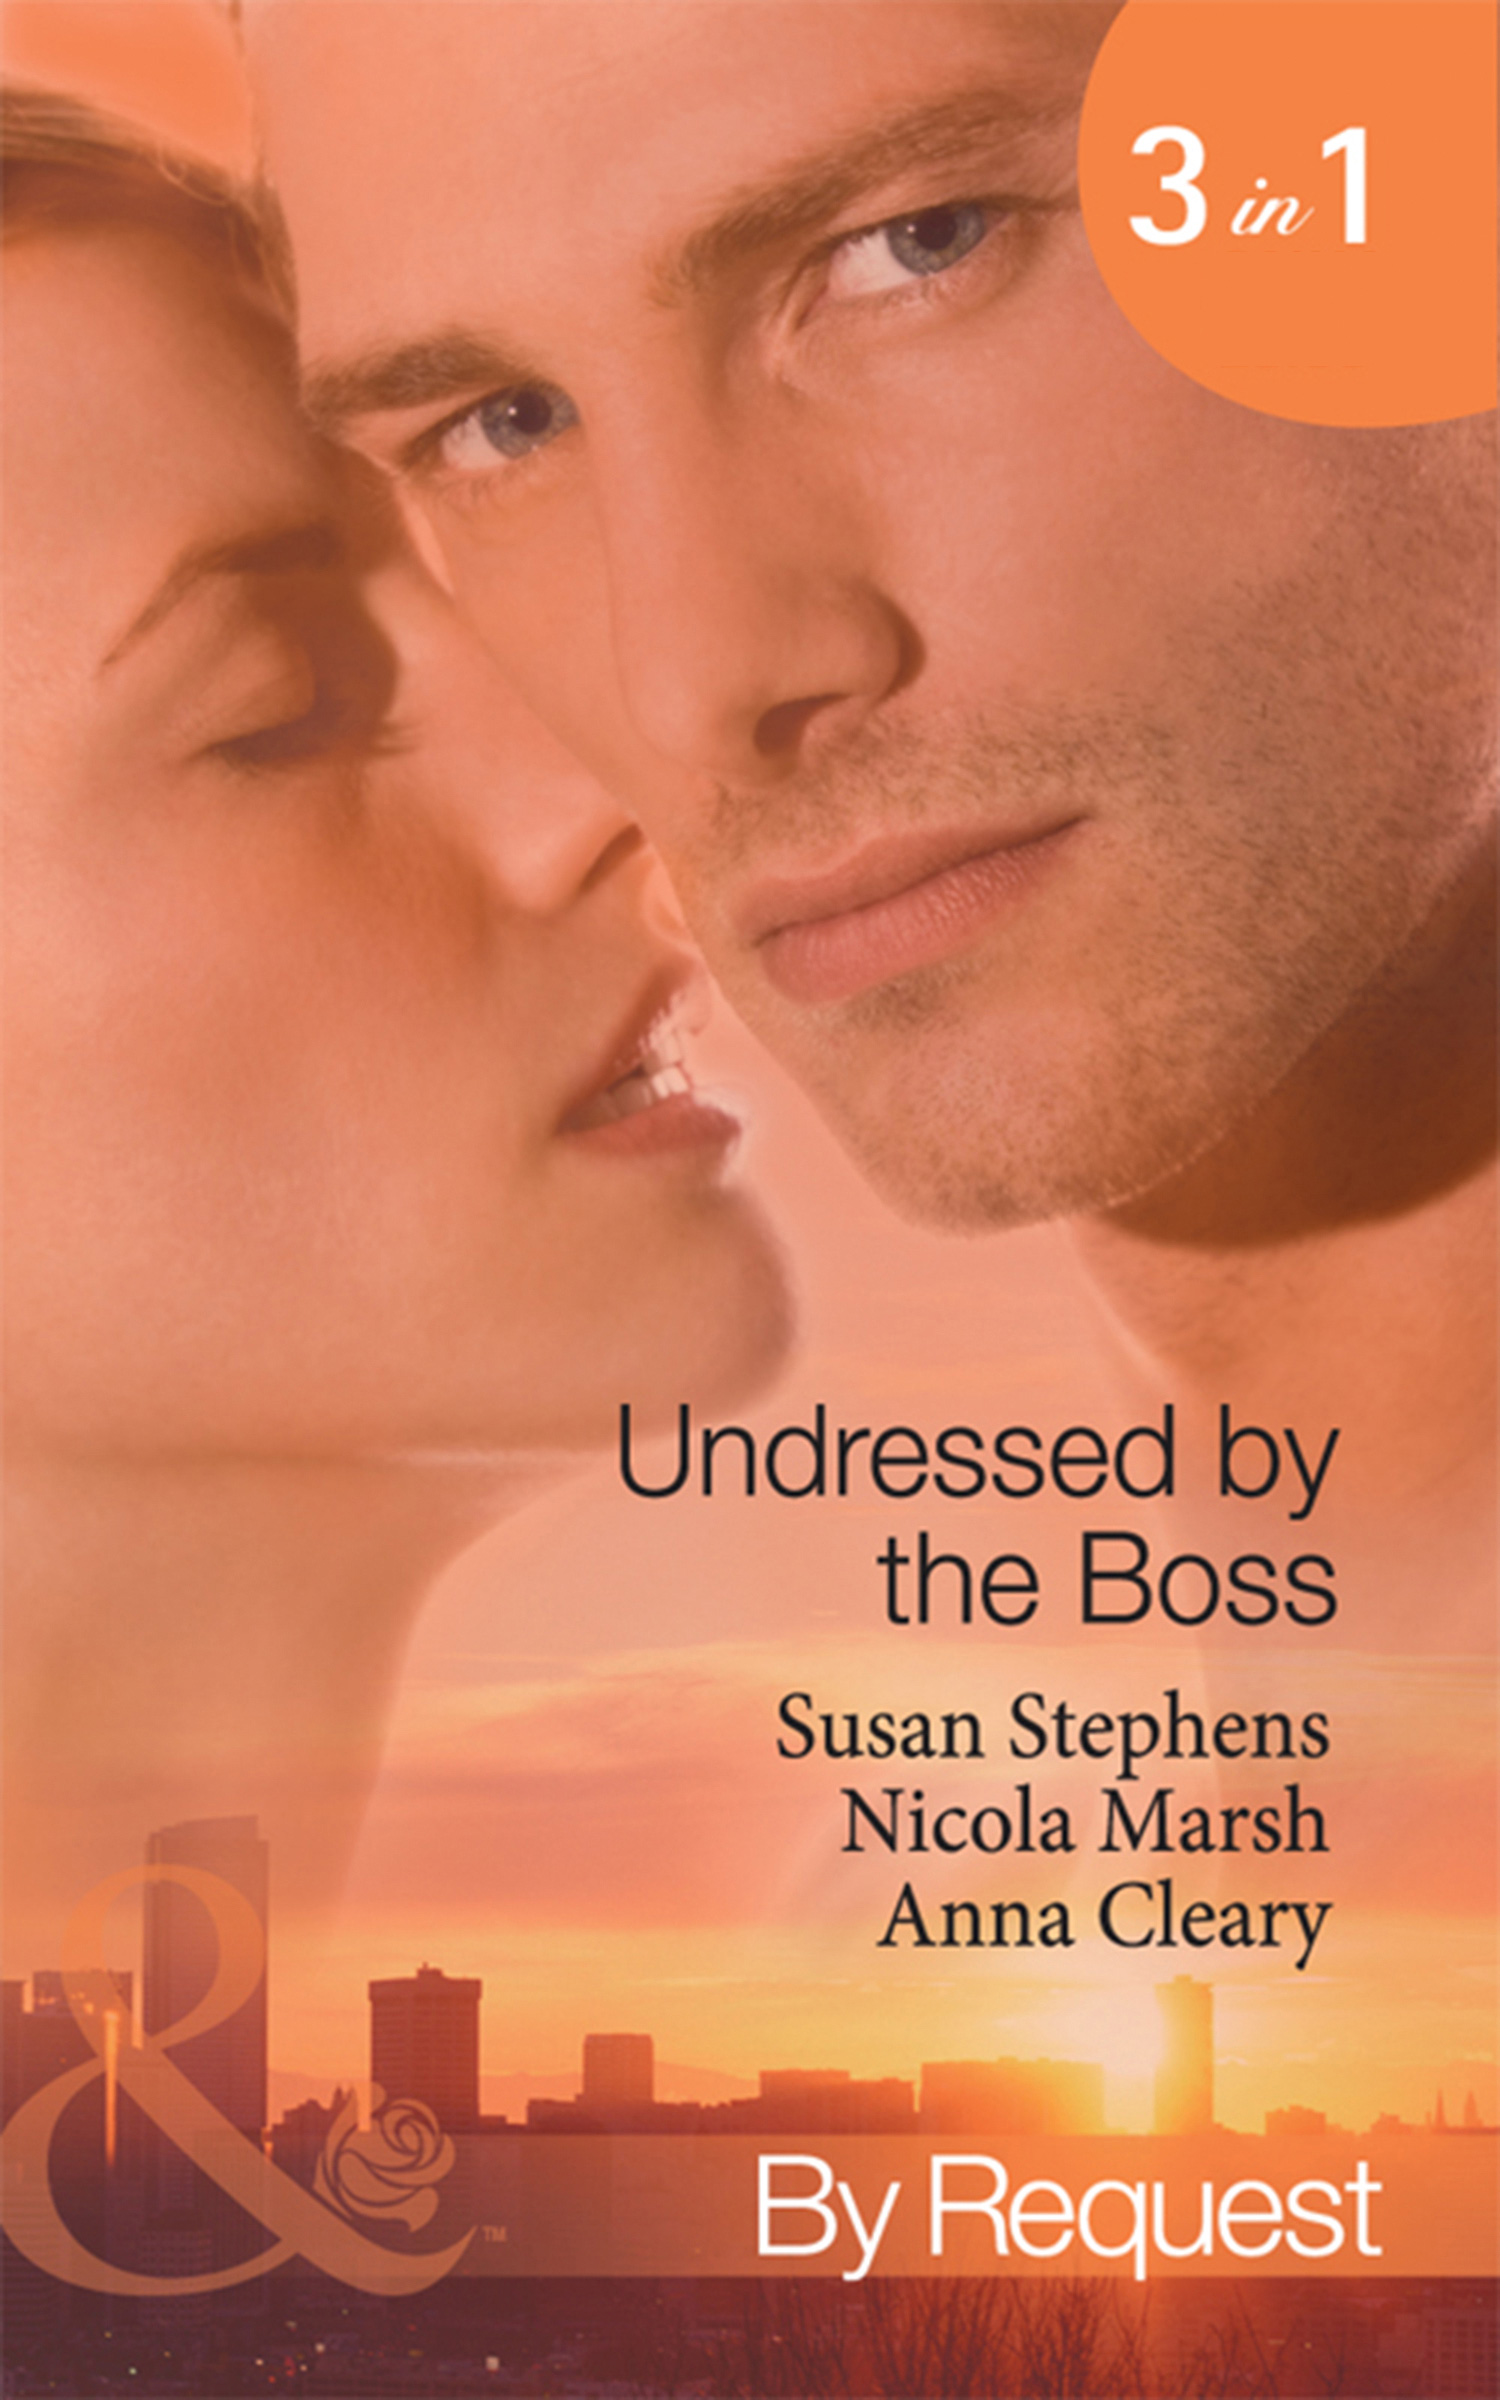 Undressed by the Boss